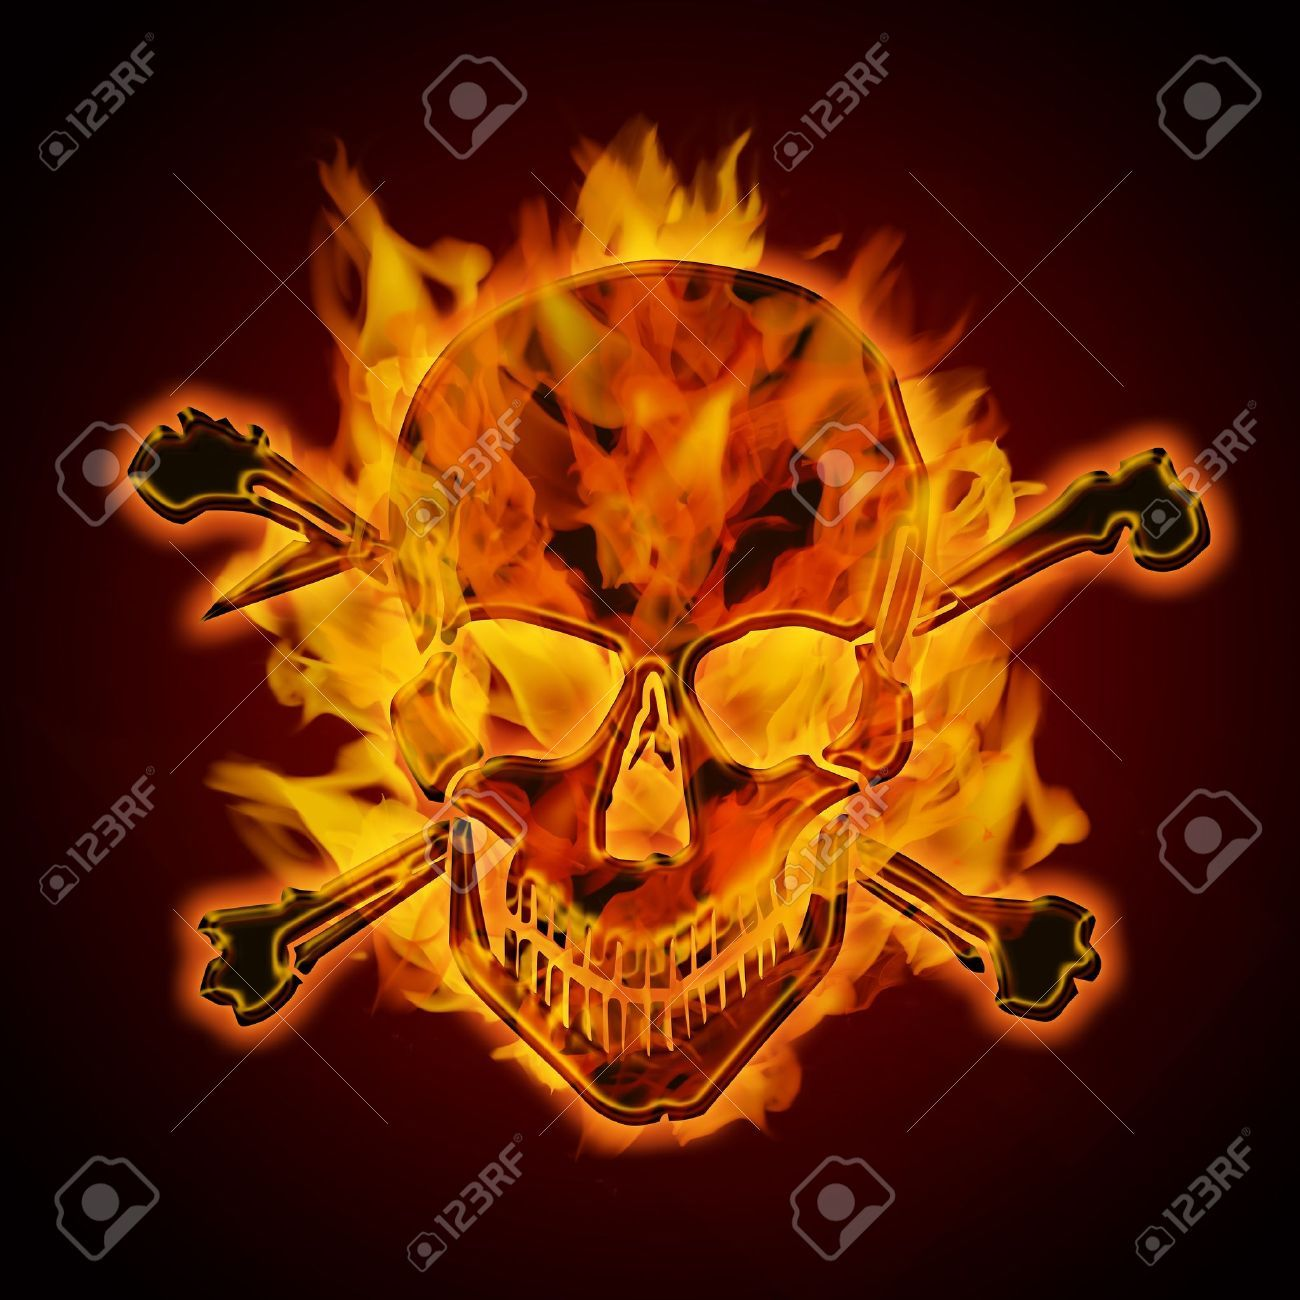 Fire Burning Flaming Metal Skull With Crossbones On Dark ...